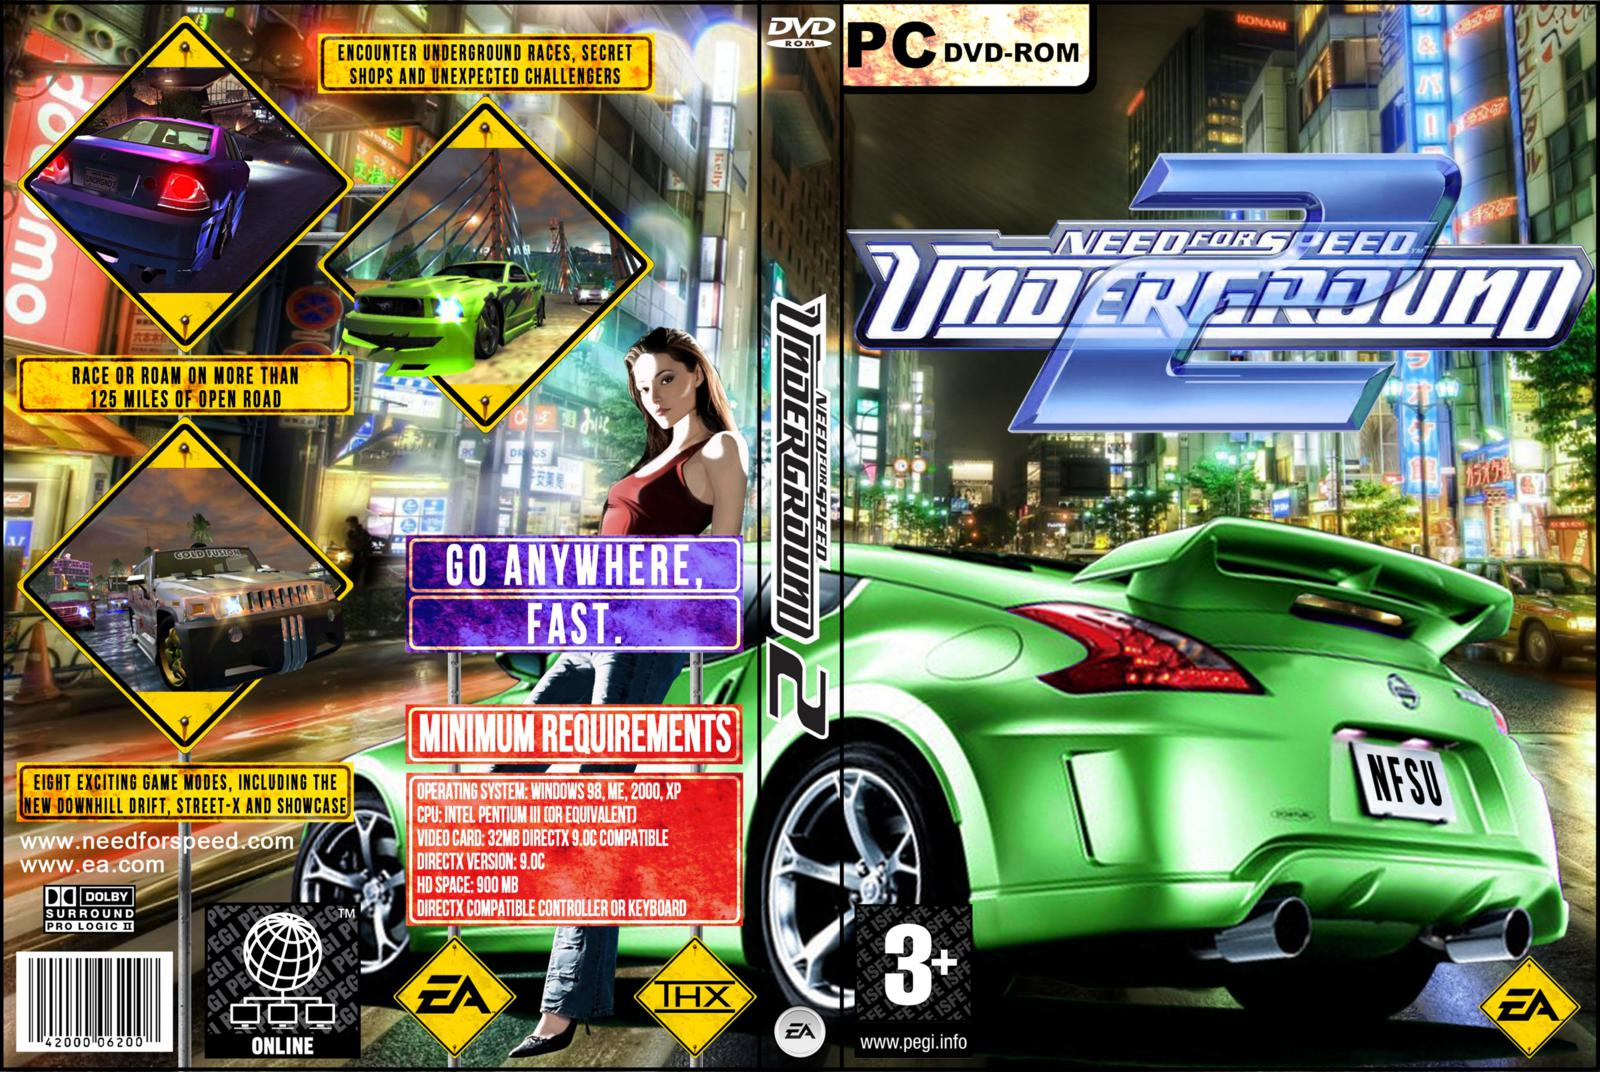 Need for speed 2 underground porn sexy vids